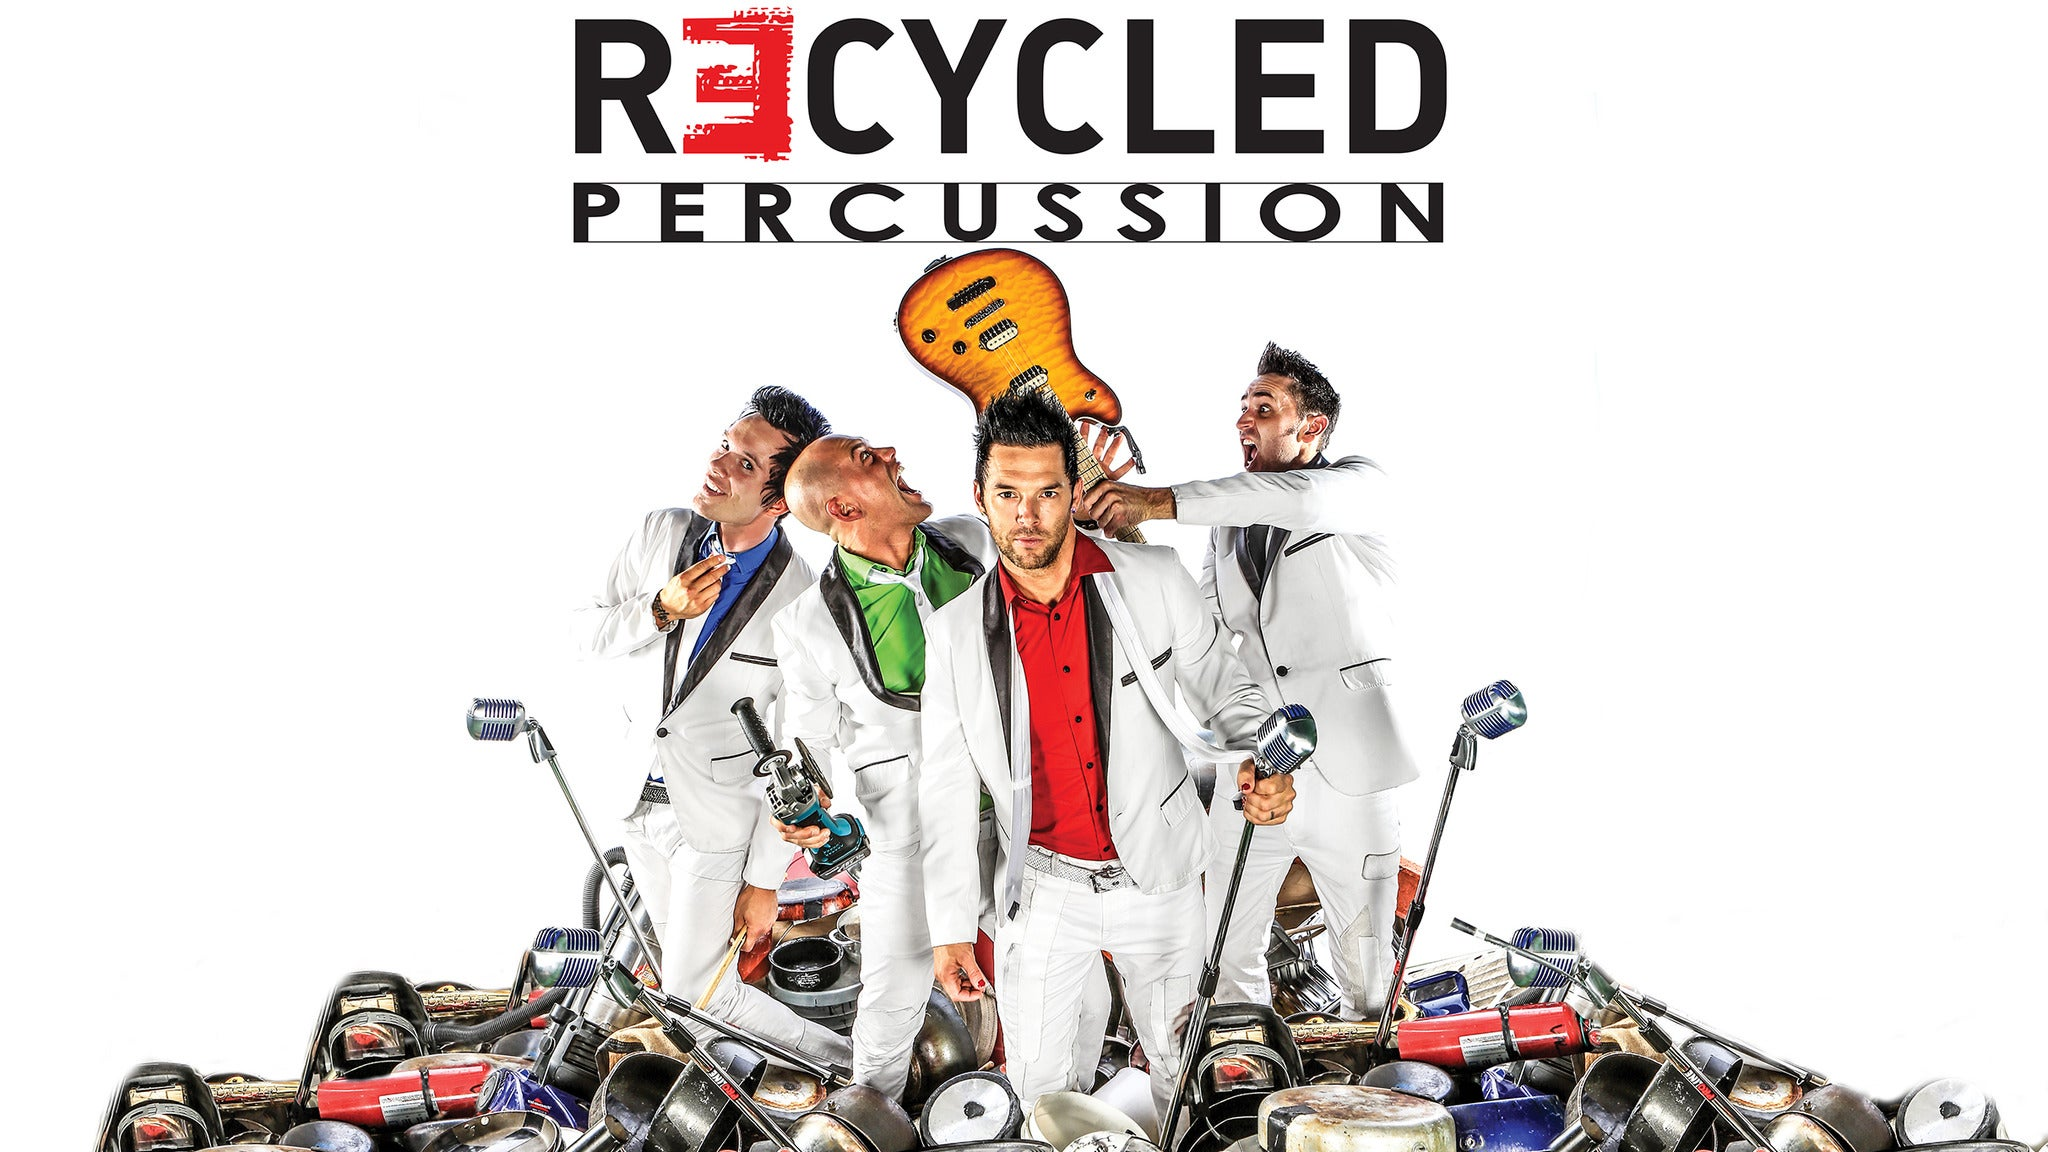 Recycled Percussion at Effingham Performance Center